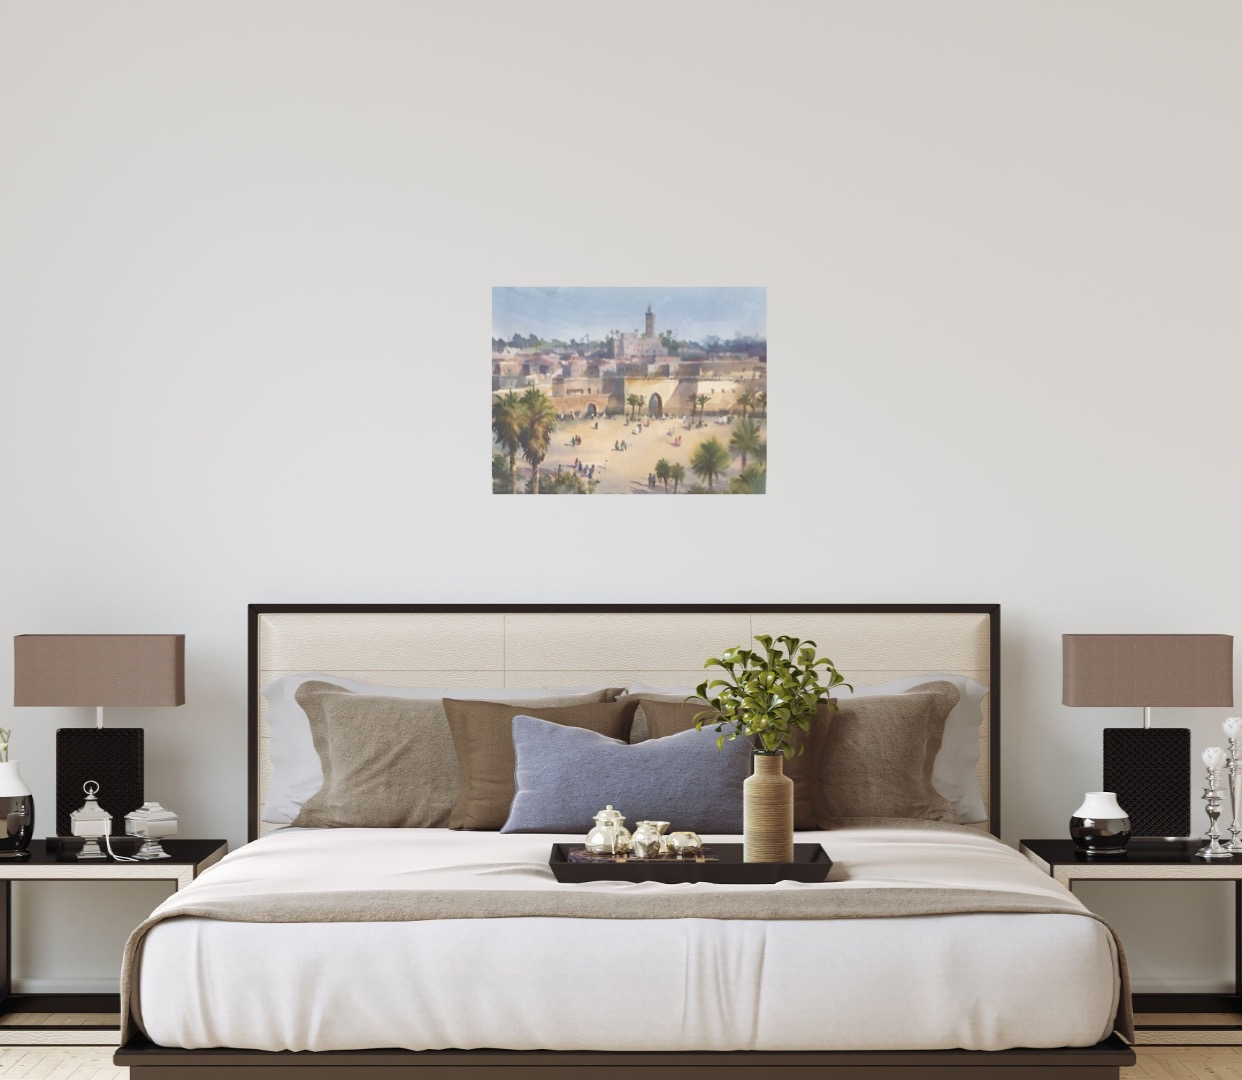 Walls of Marrakech is an original watercolour painting by Trevor Waugh. The blurred effect of the watercolour paint is reminiscent of the high temperatures in Marrakech.